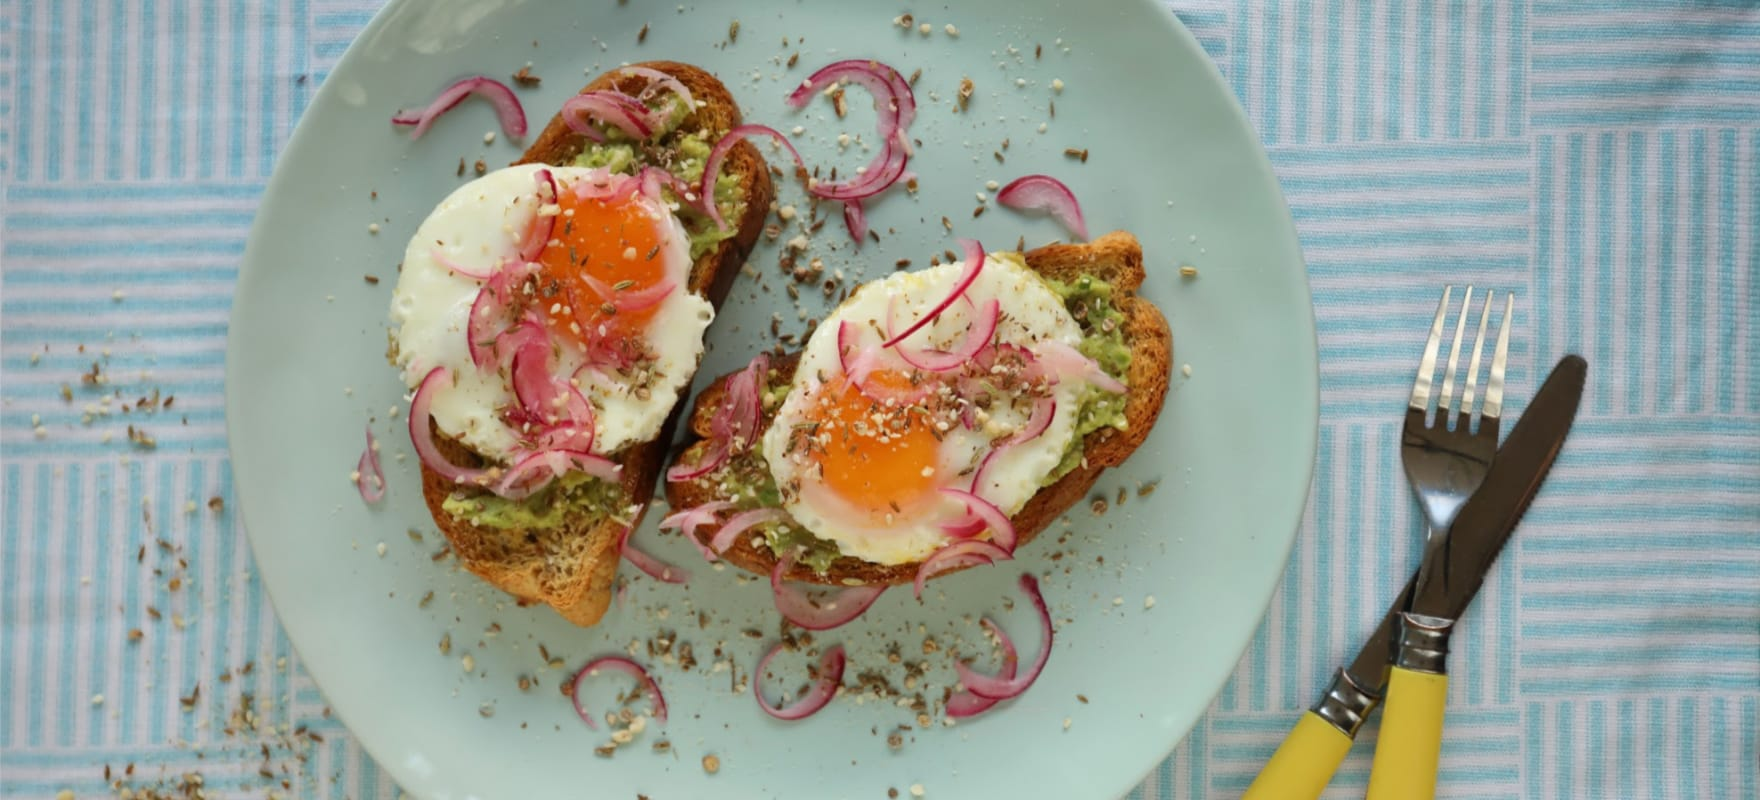 Avocado, egg and spiced dukkah on toast image 2